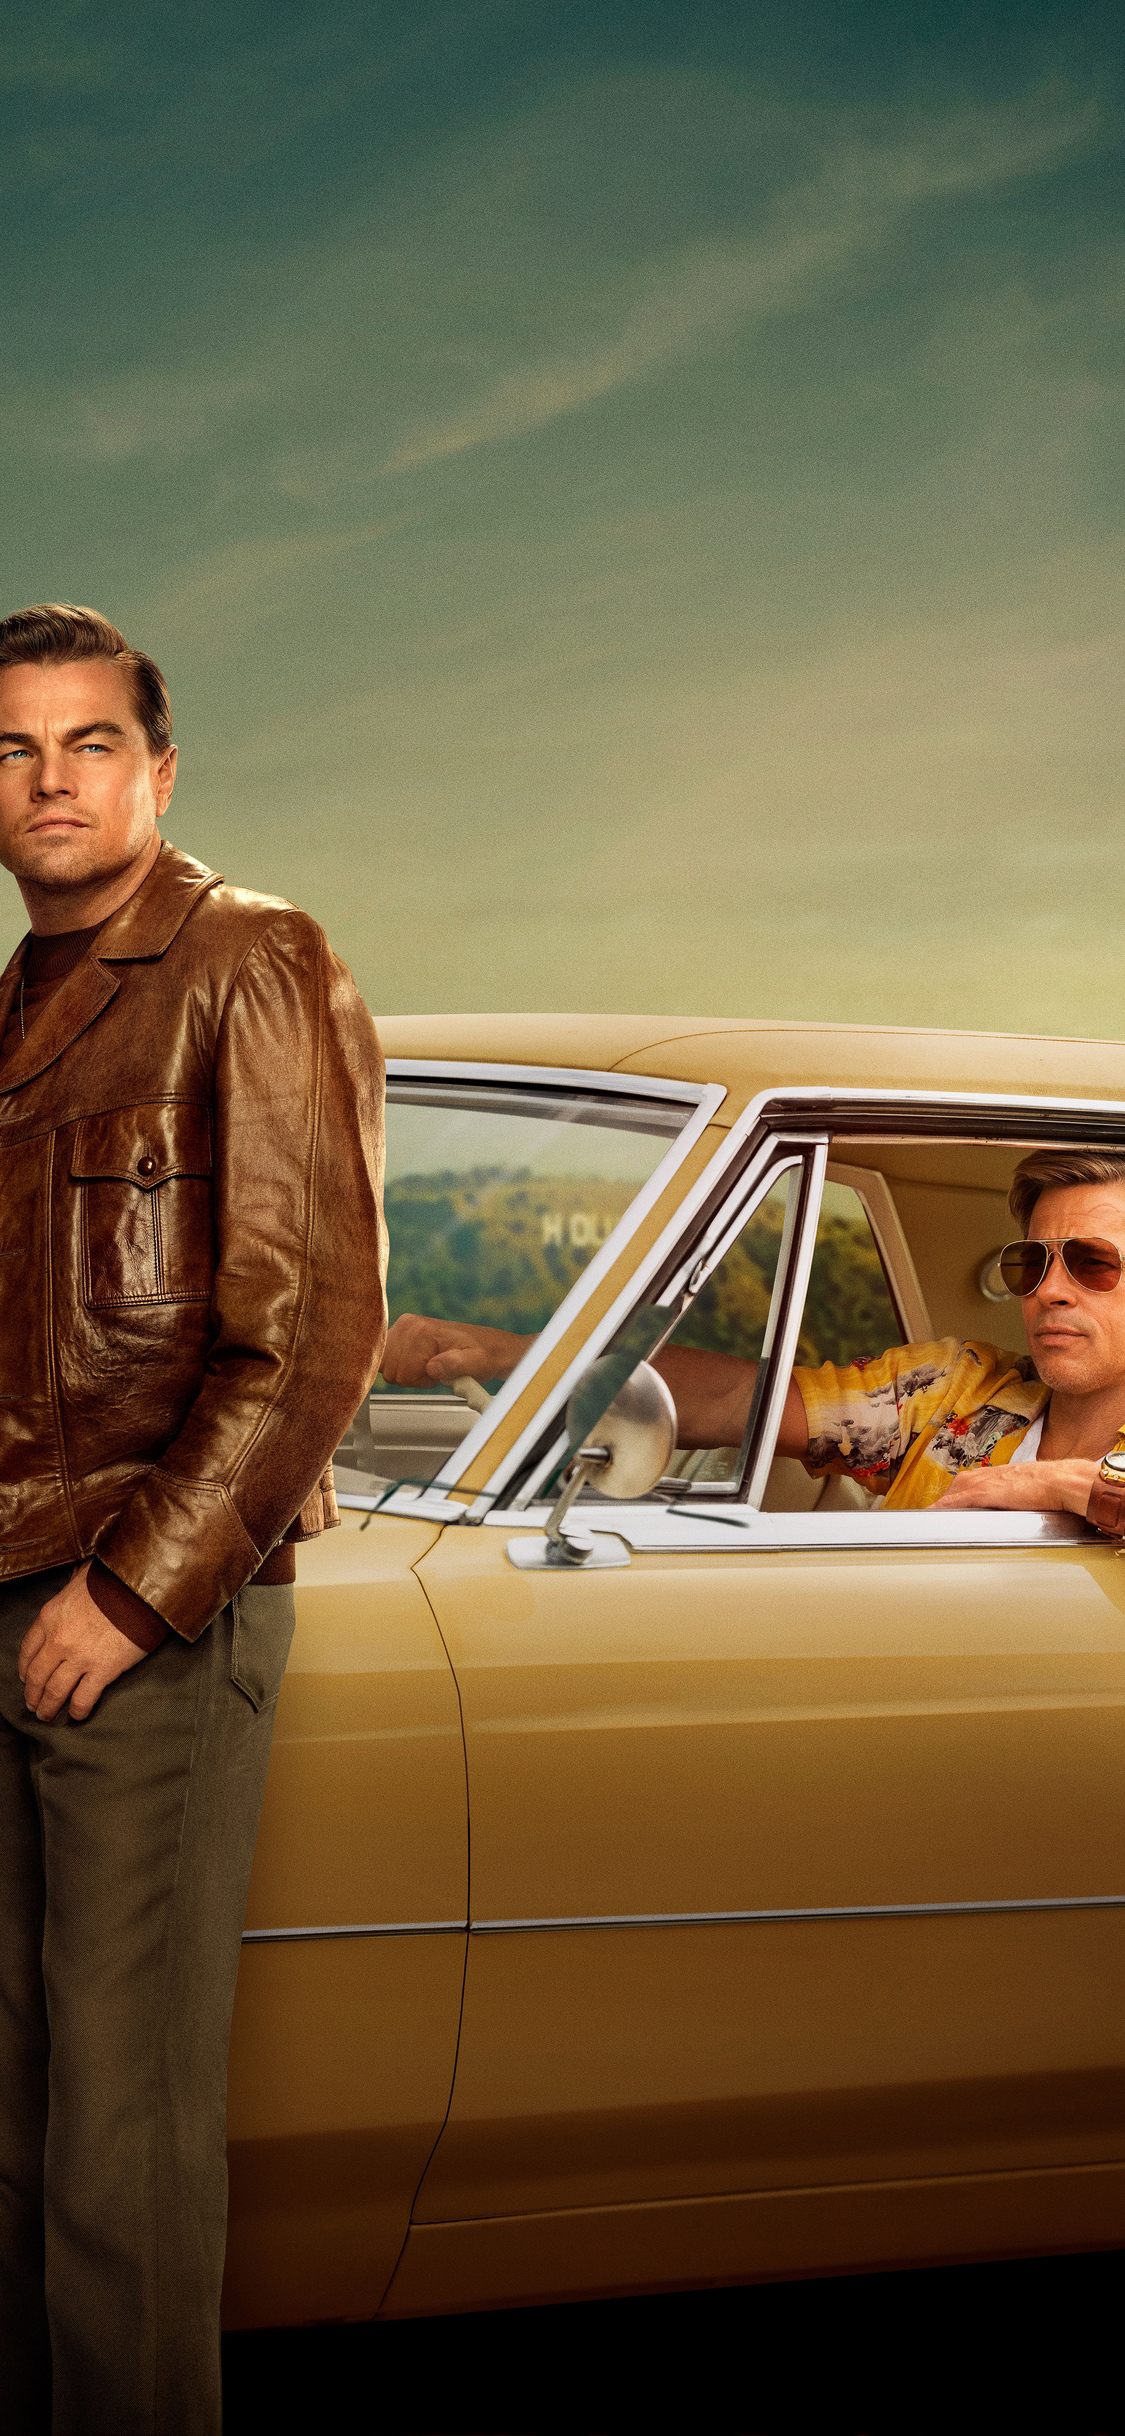 1125x2436 Once Upon A Time In Hollywood 2019 4k Iphone Xs